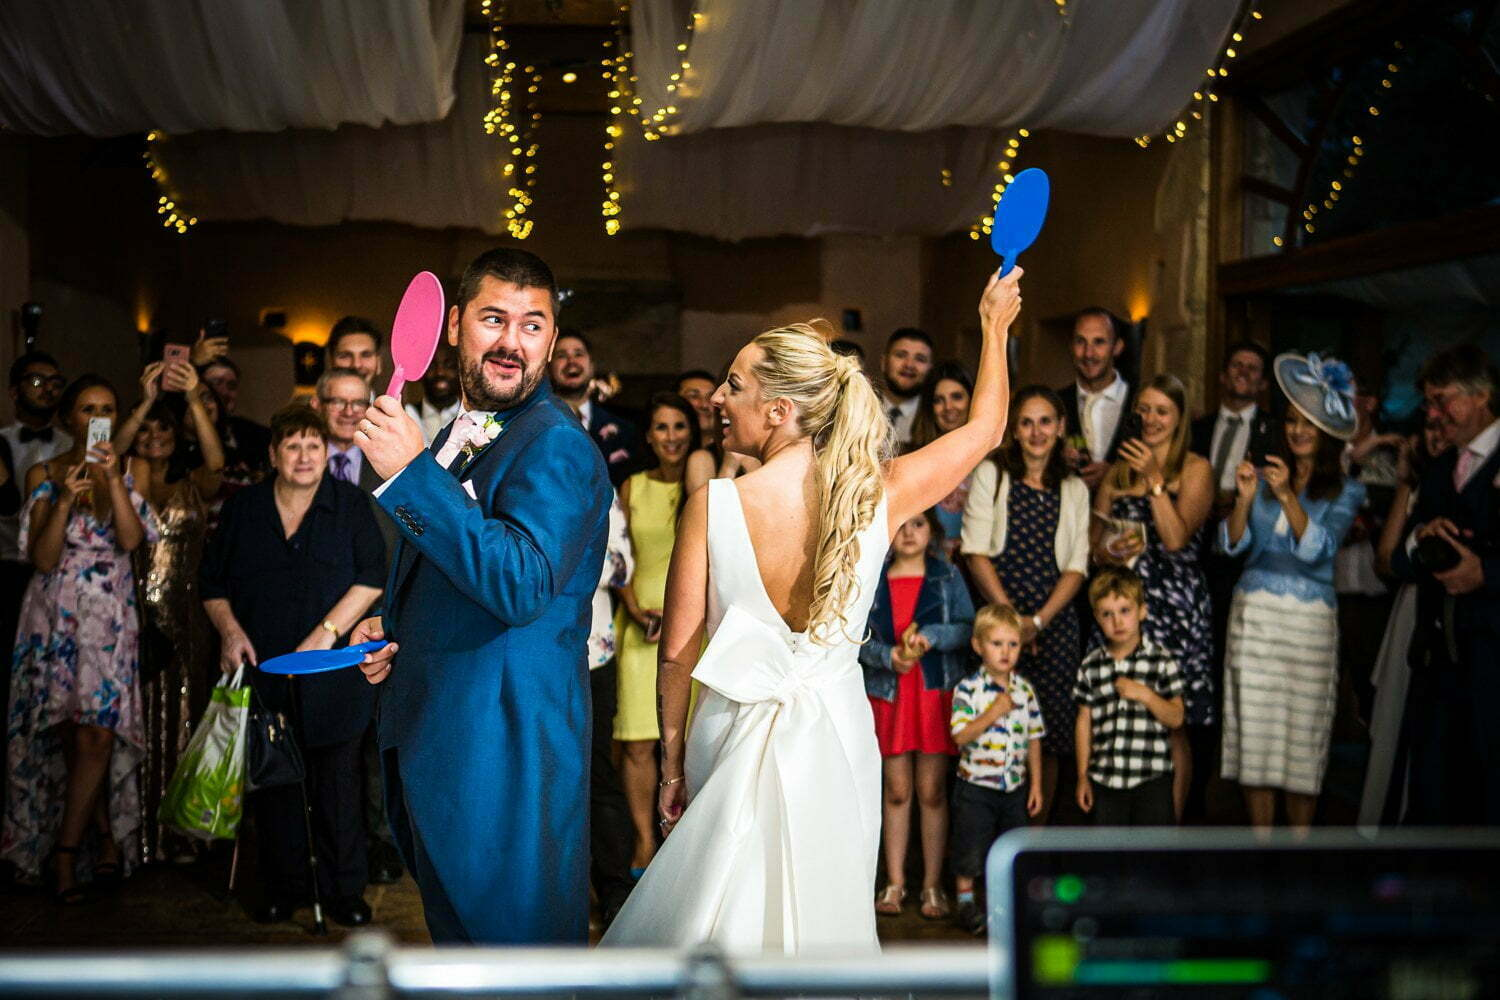 Oxleaze Barn wedding - wedding games